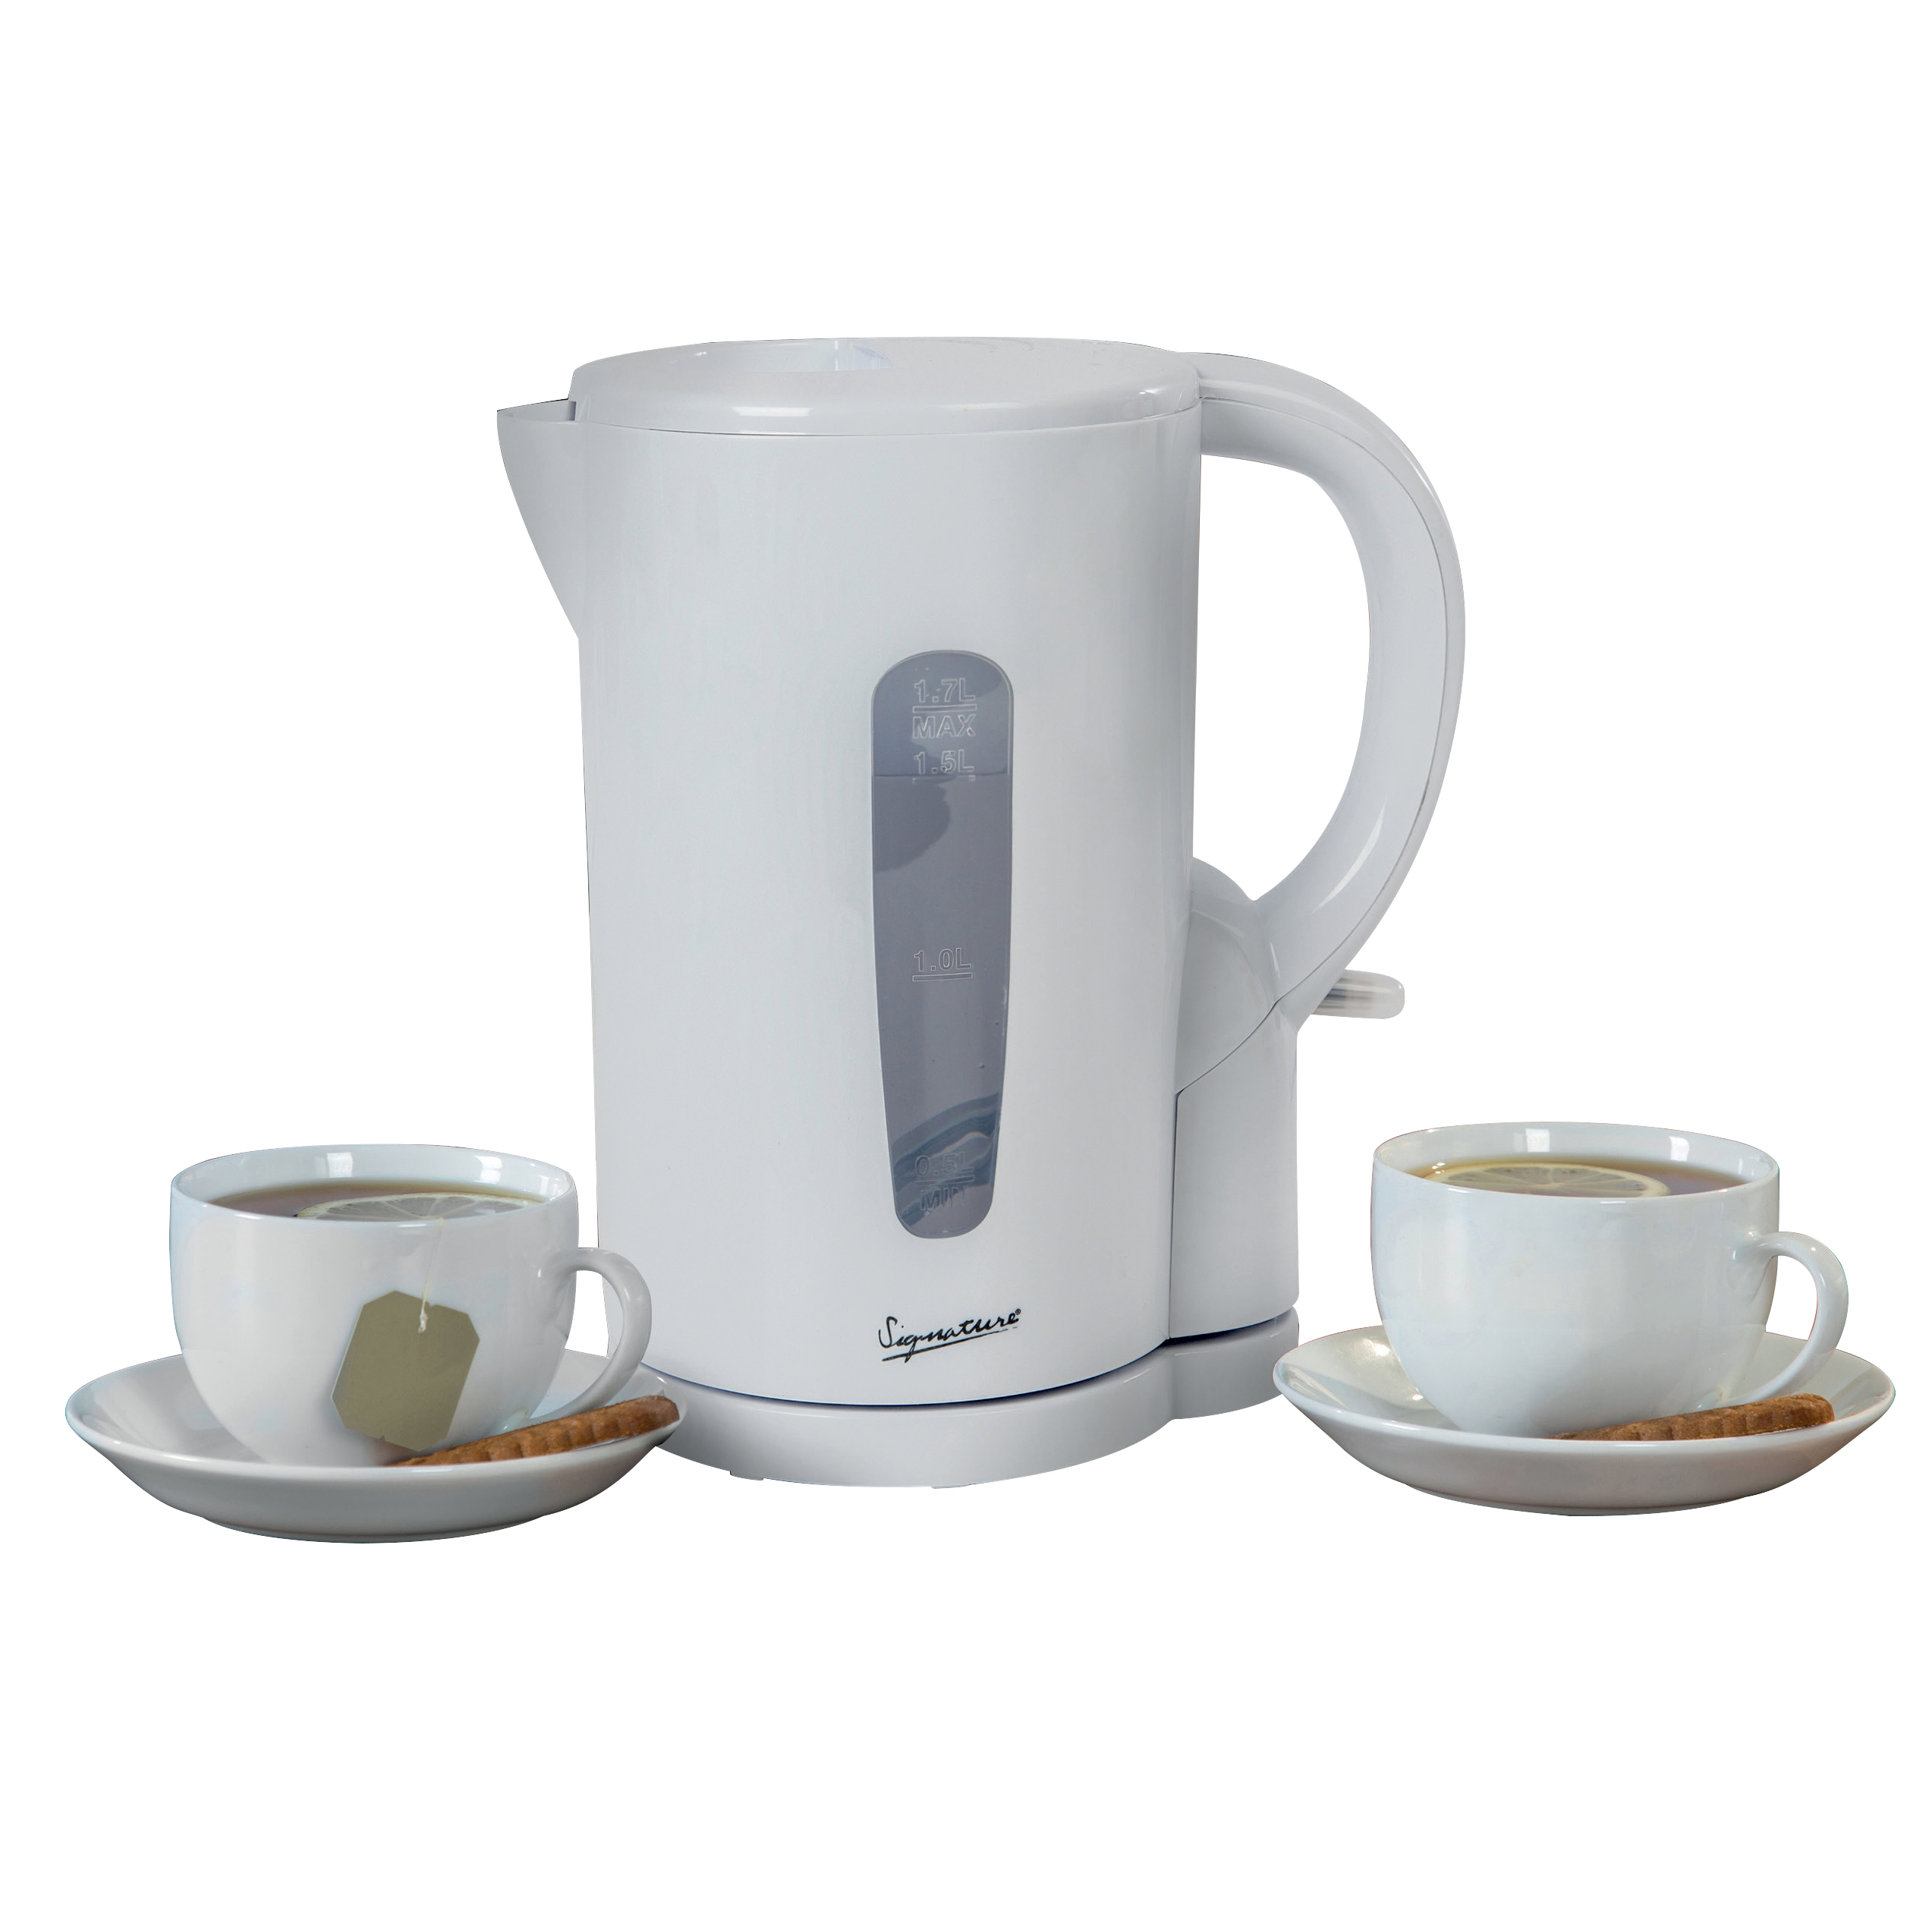 Signature 1.7 Litre Electric Kettle No Colour